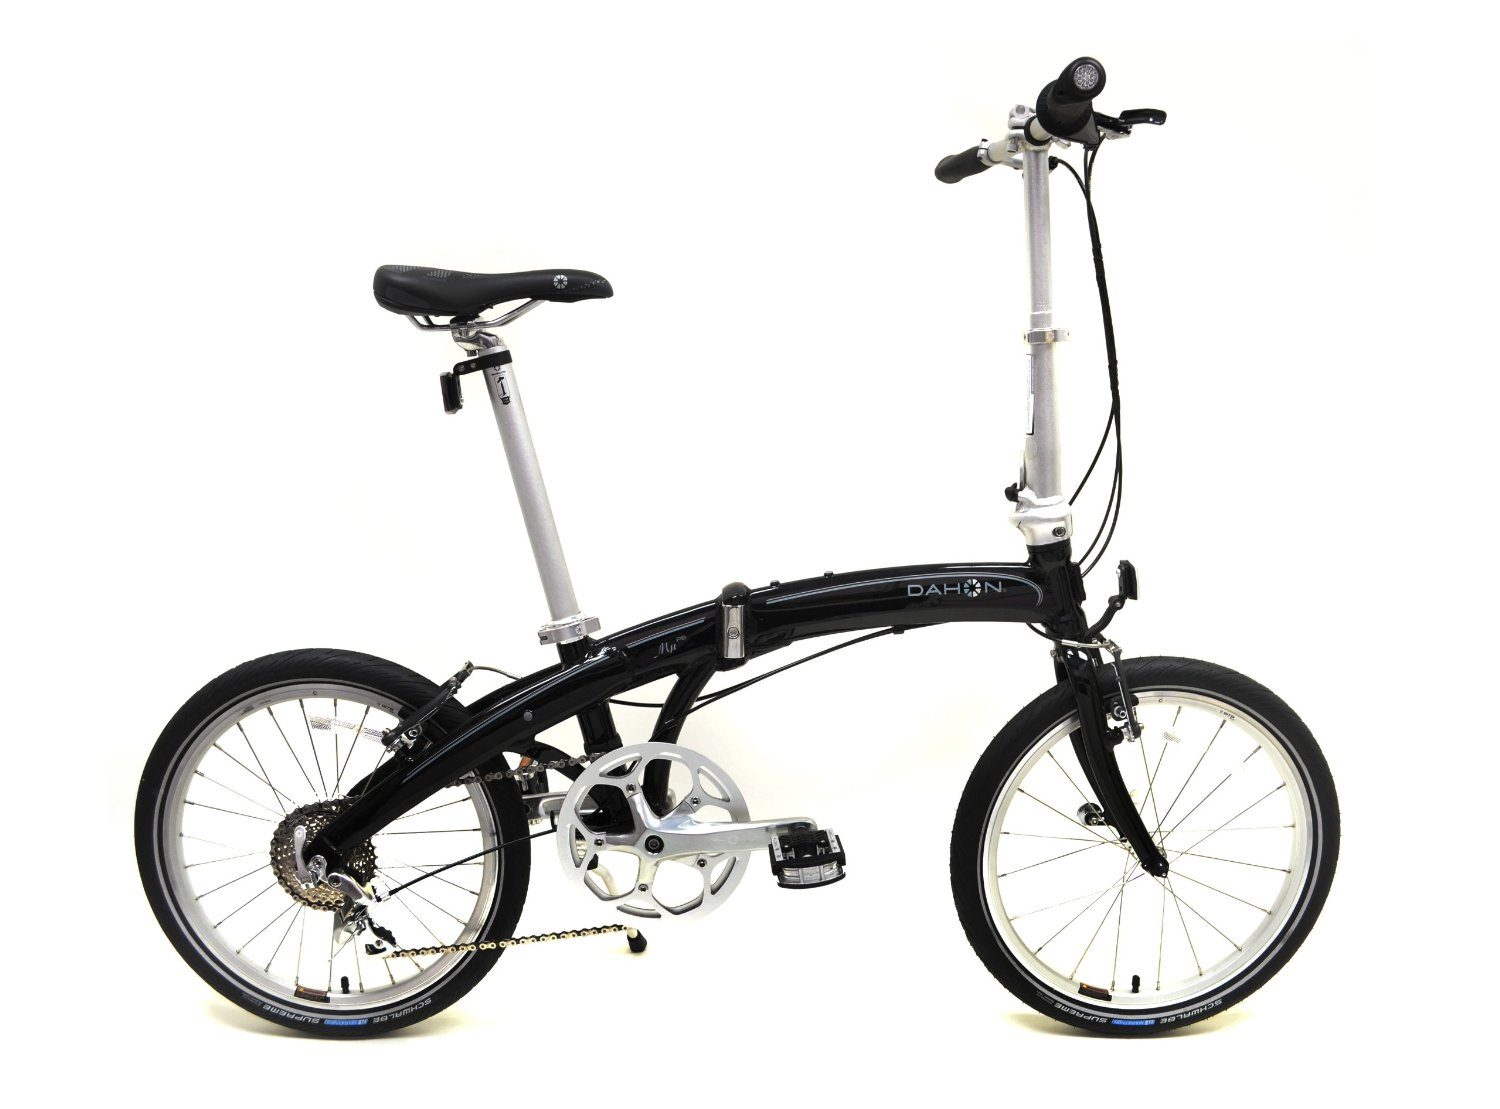 2007 F150 Wiring Harness Diagram in addition Olympic Games Thief Stencil together with Clipart Grey Corner Curve likewise 1596 Trek Precaliber 24 Inch 21 Speed Mountain Kids Bike Purple Lotus together with Fourbolster. on cool light box